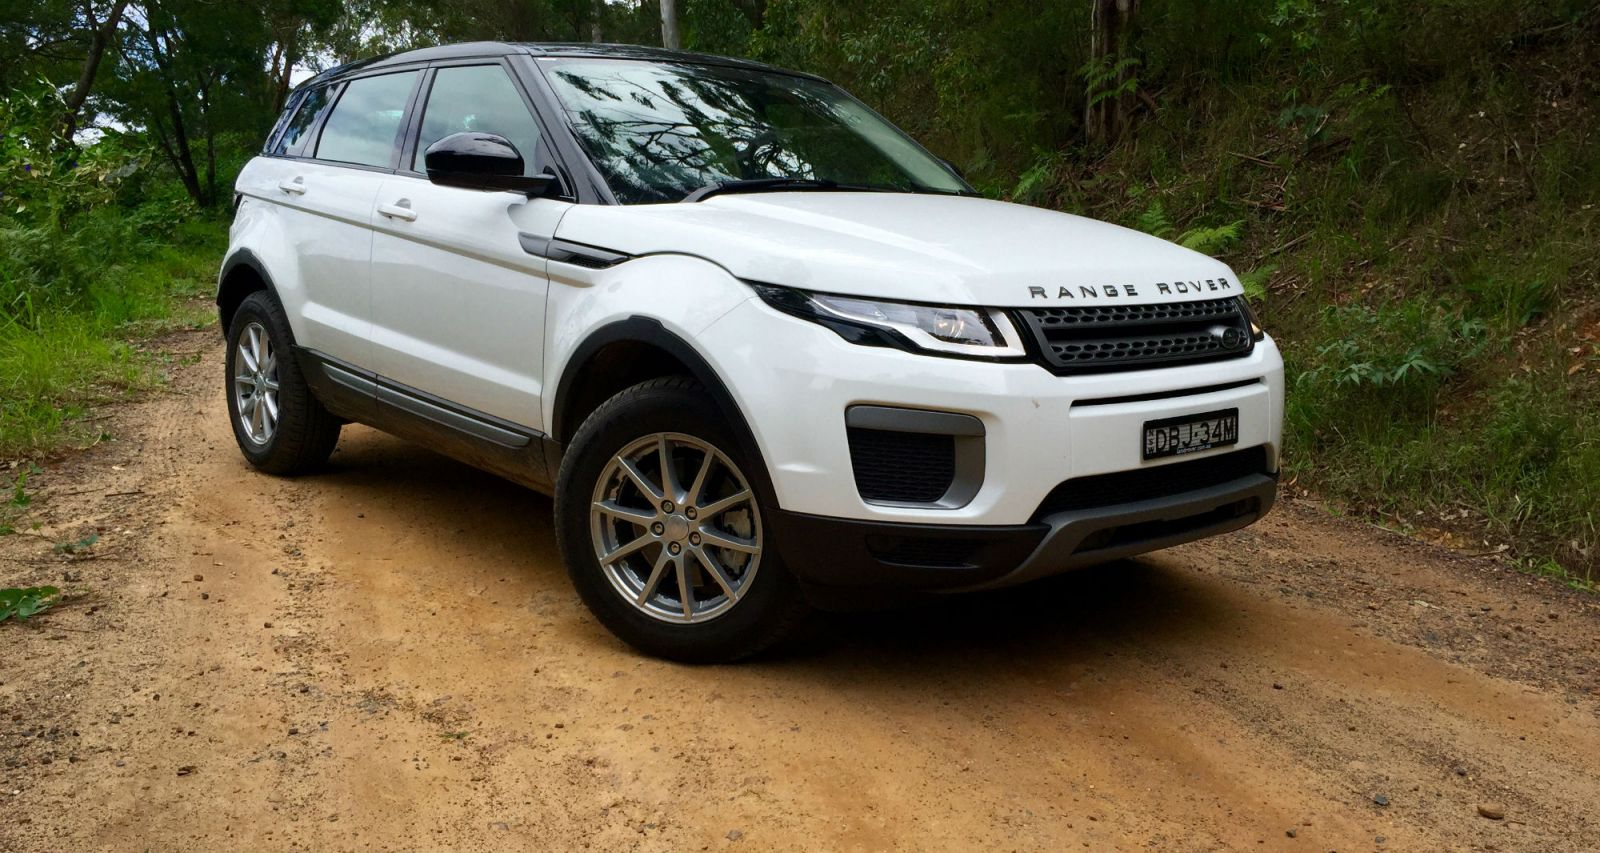 2016 Range Rover Evoque TD4 150 Pure REVIEW, Price, Features | Fashionista Style, But A Tad Slow